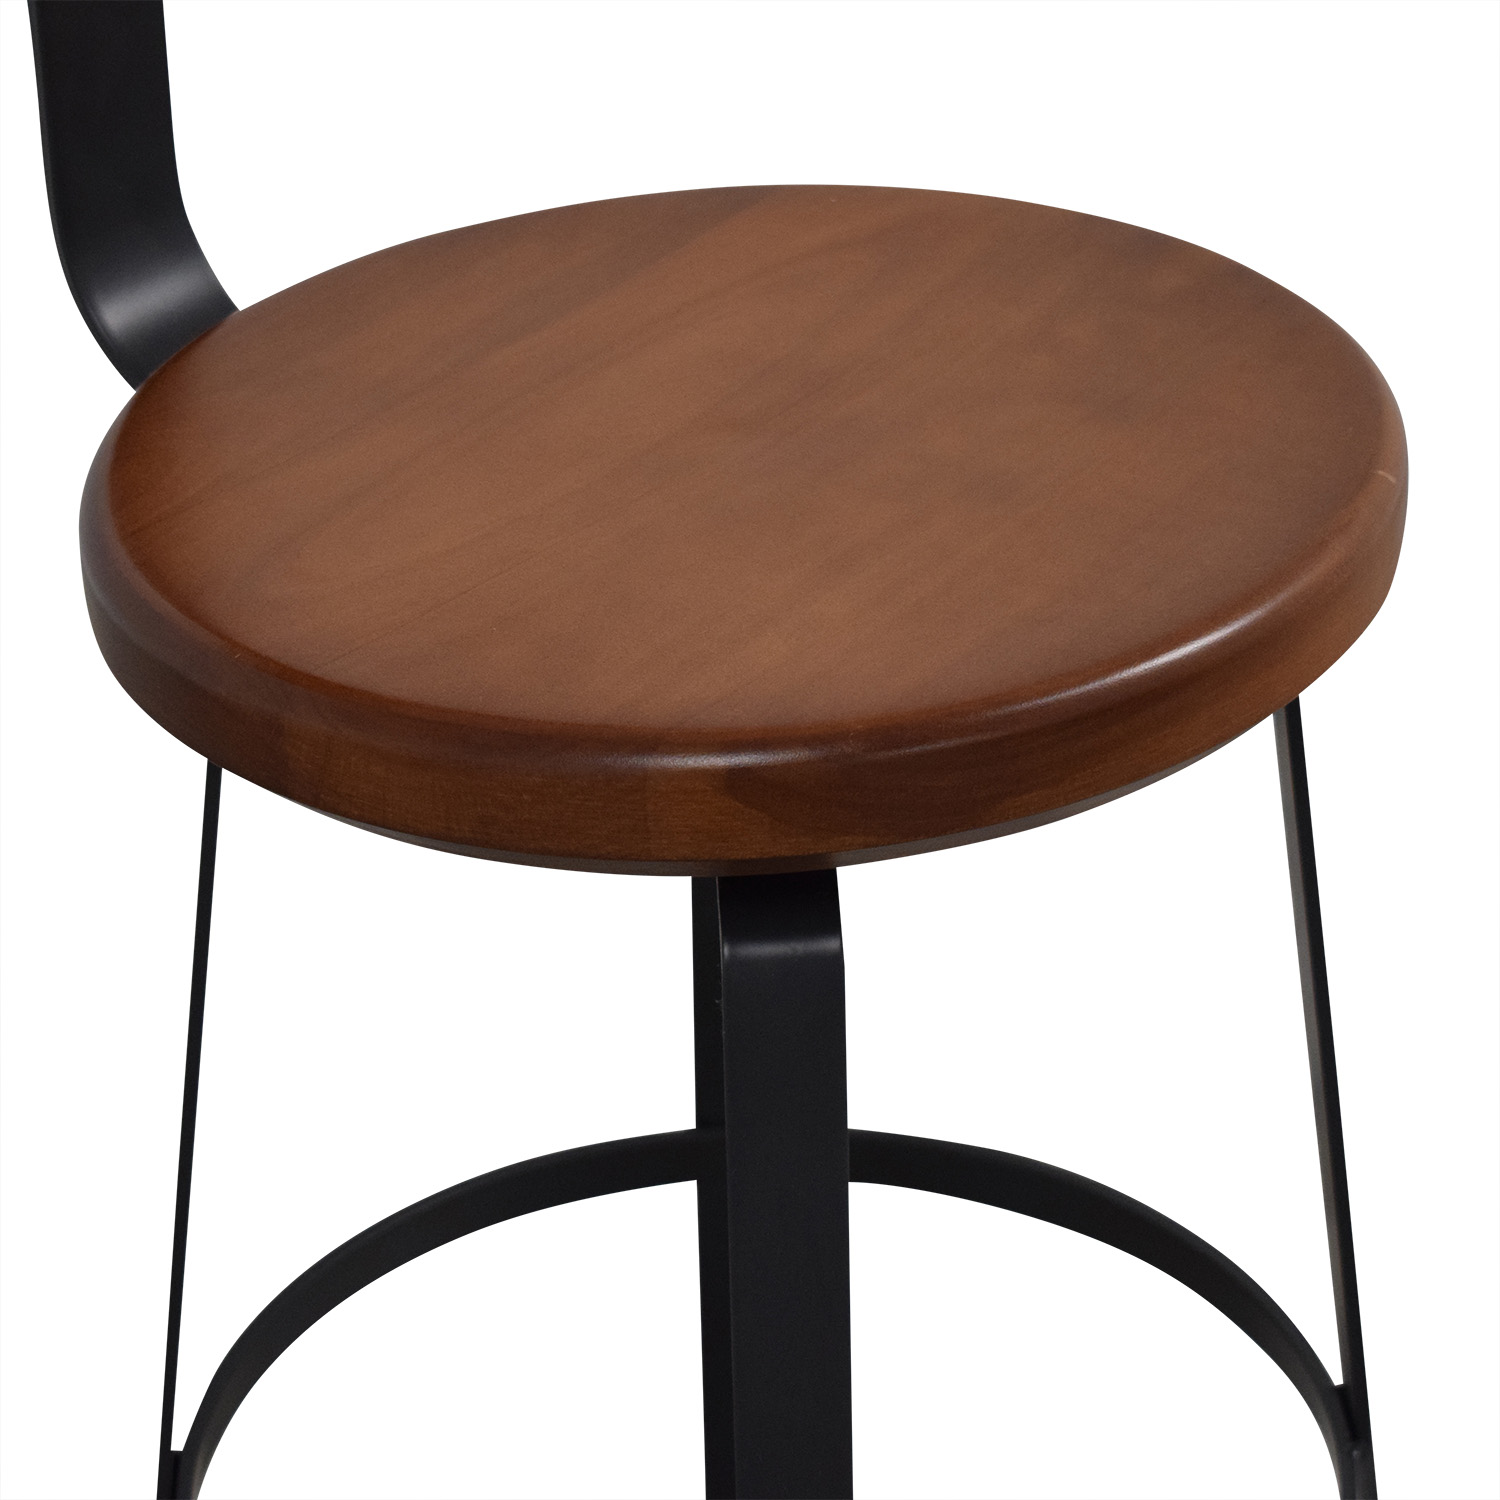 West Elm West Elm Adjustable Industrial Swivel Stool black and brown